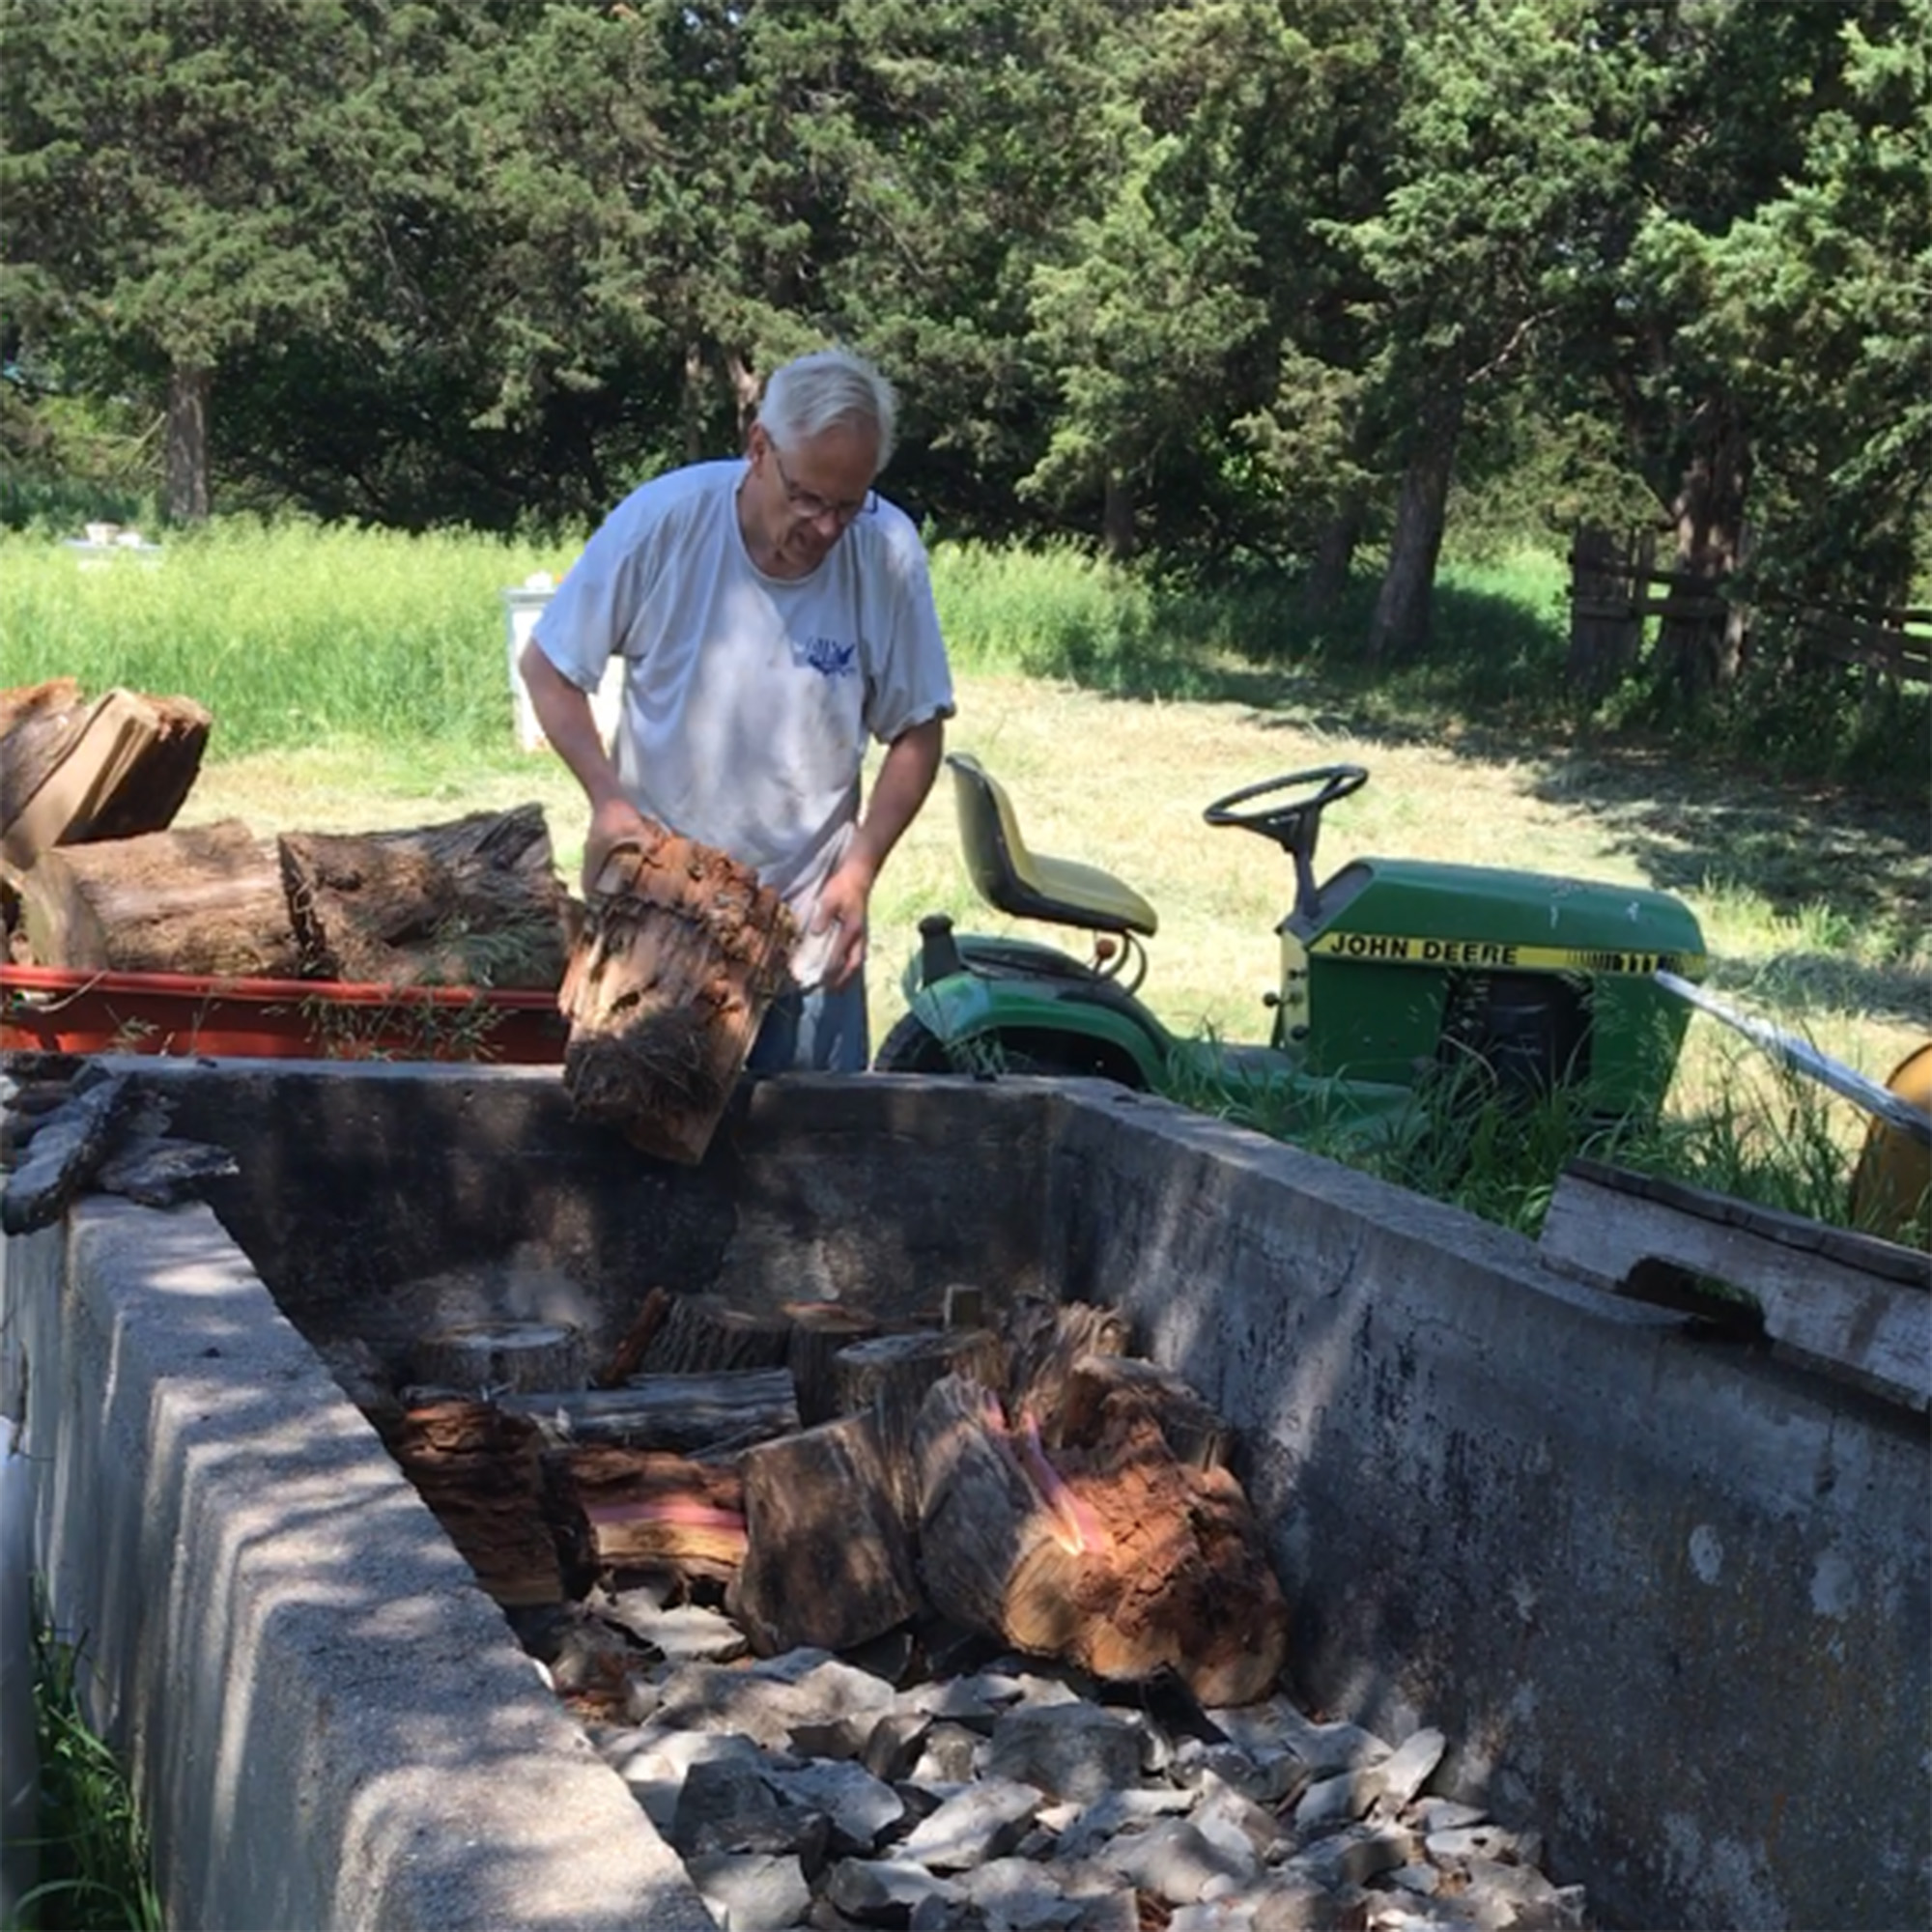 Cedar Bluffs couple brings German practice of Hugelkultur to their rural property